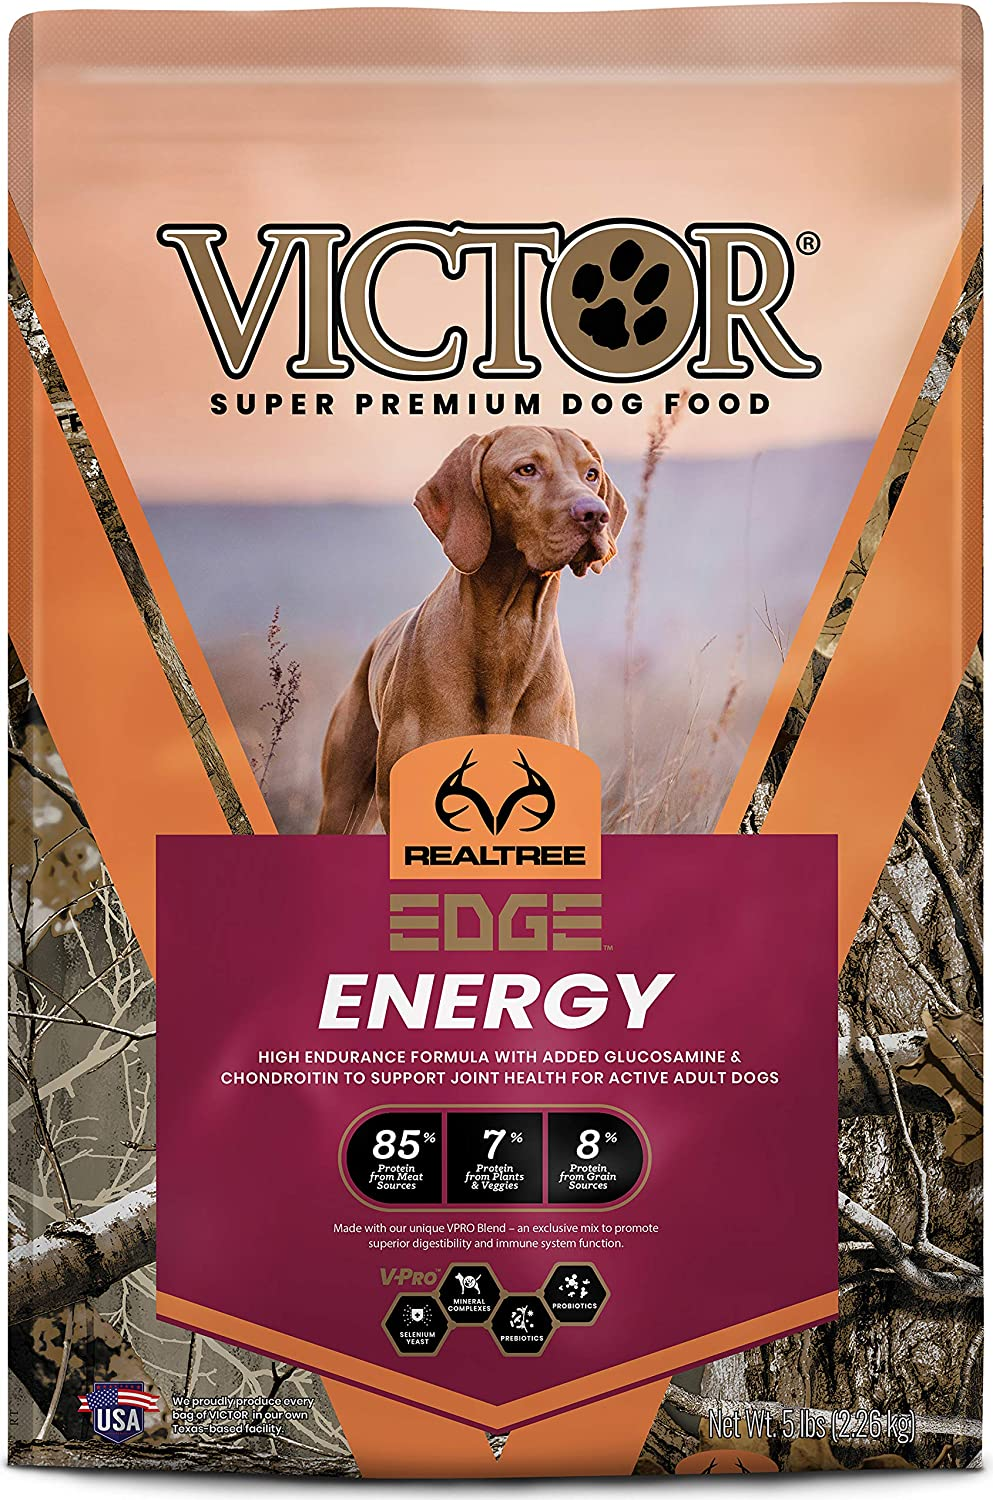 Victor Super Premium Pet Food Realtree Edge Energy, Dry Dog Food, Camo, 5-lb Bag